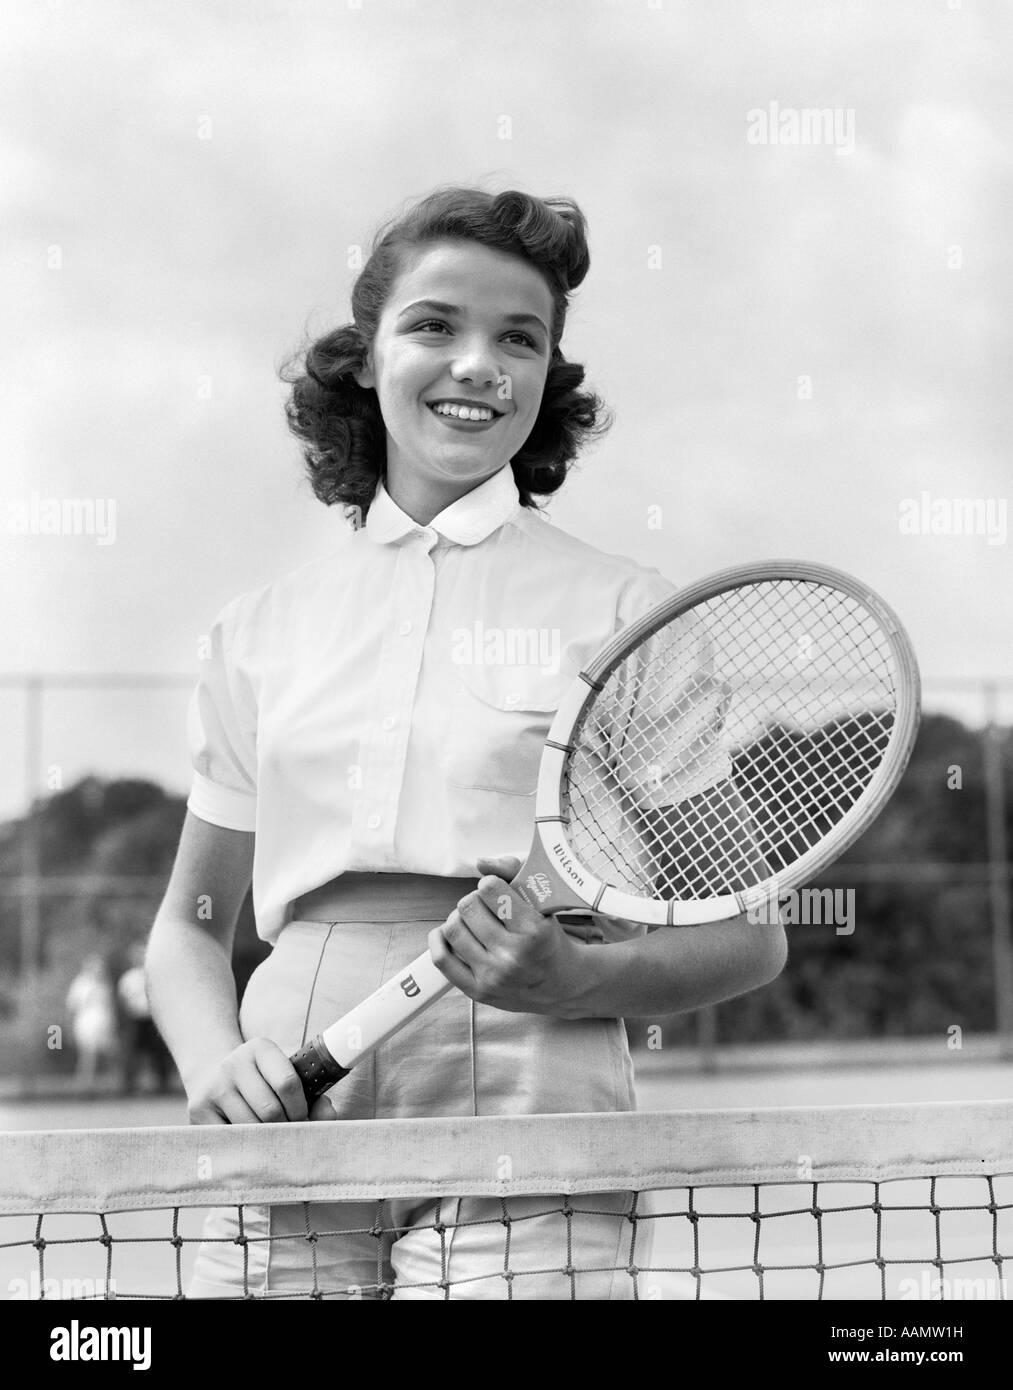 1950s 1940s WOMAN POSING WITH TENNIS RACKET ON TENNIS COURT NEAR NET - Stock Image